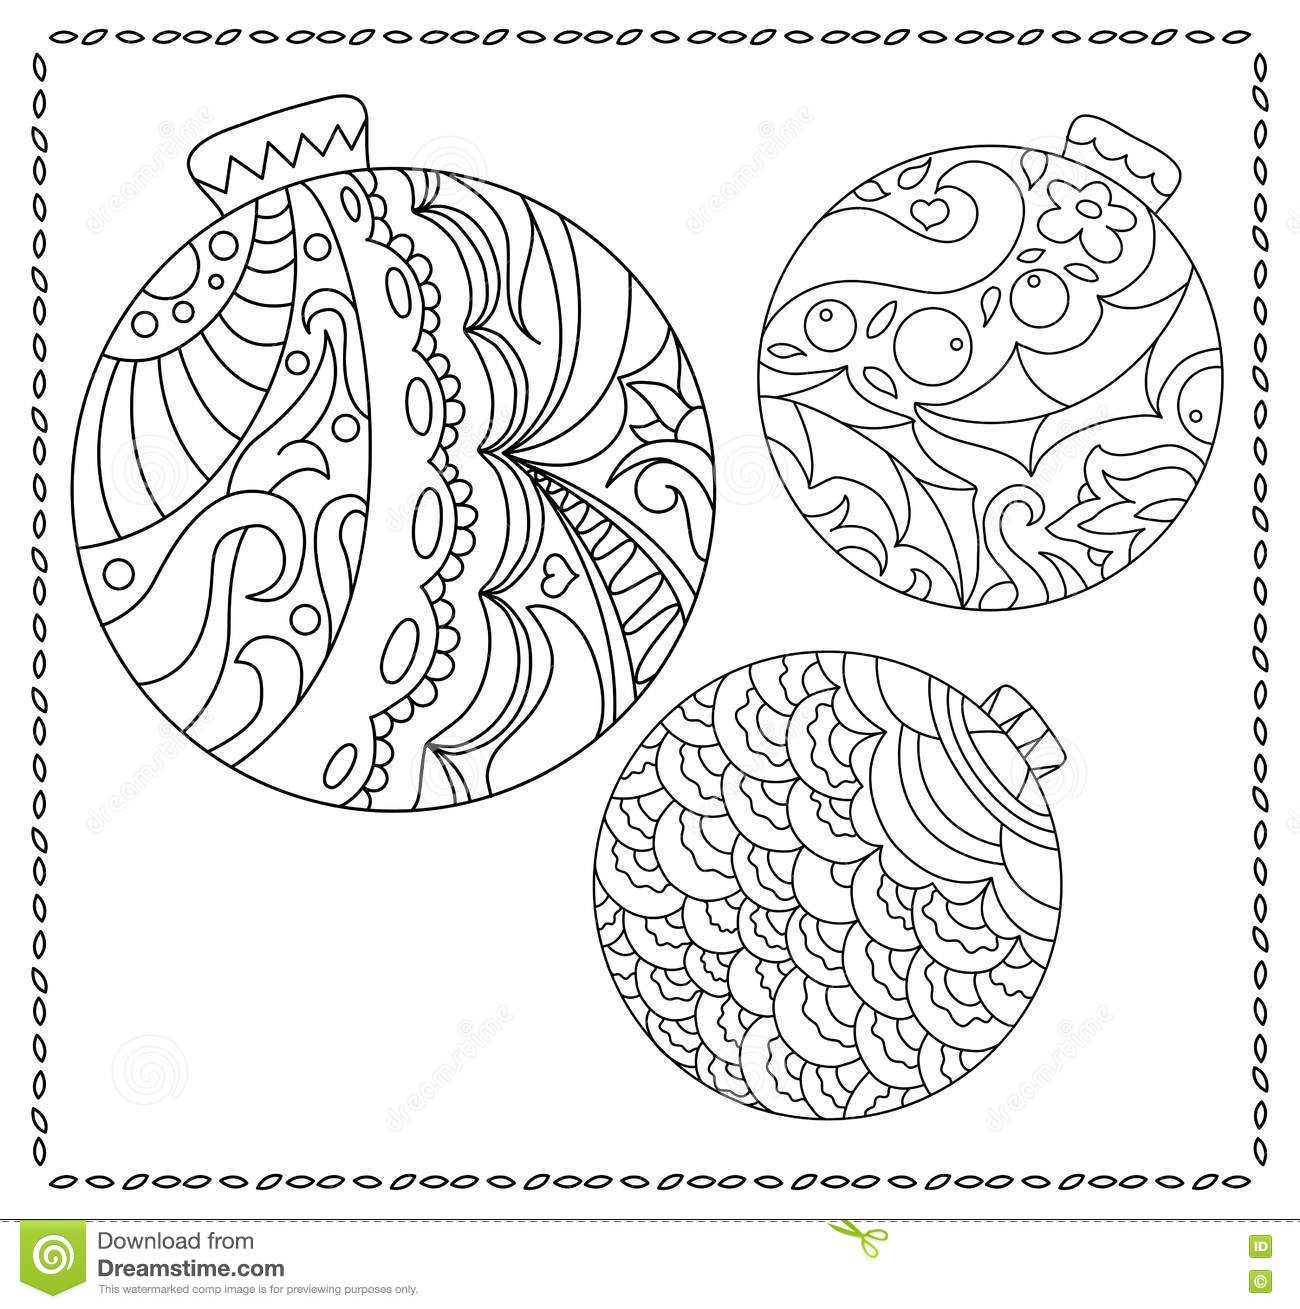 adult or teen coloring page with christmas or new year doodle illustration